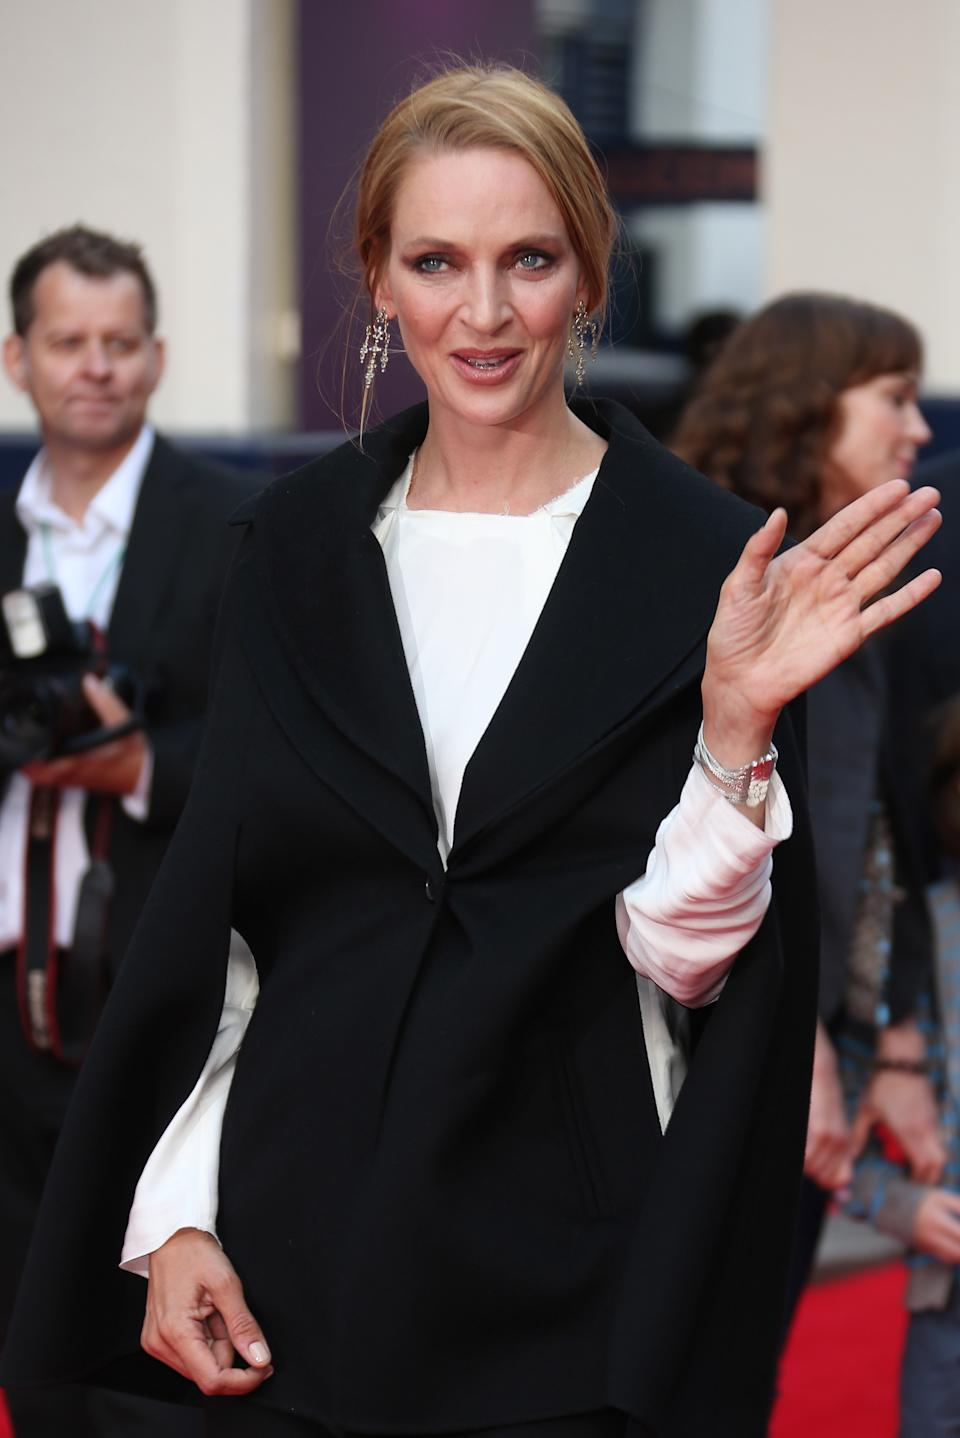 Uma Thurman gestures, as she arrives for the opening night of Charlie and the Chocolate Factory, a new stage musical based on Roald Dahl's popular story about Willy Wonka and his amazing Chocolate Factory, at the Drury Lane Theatre in central London, Tuesday, June 25, 2013. (Photo by Joel Ryan/Invision/AP)